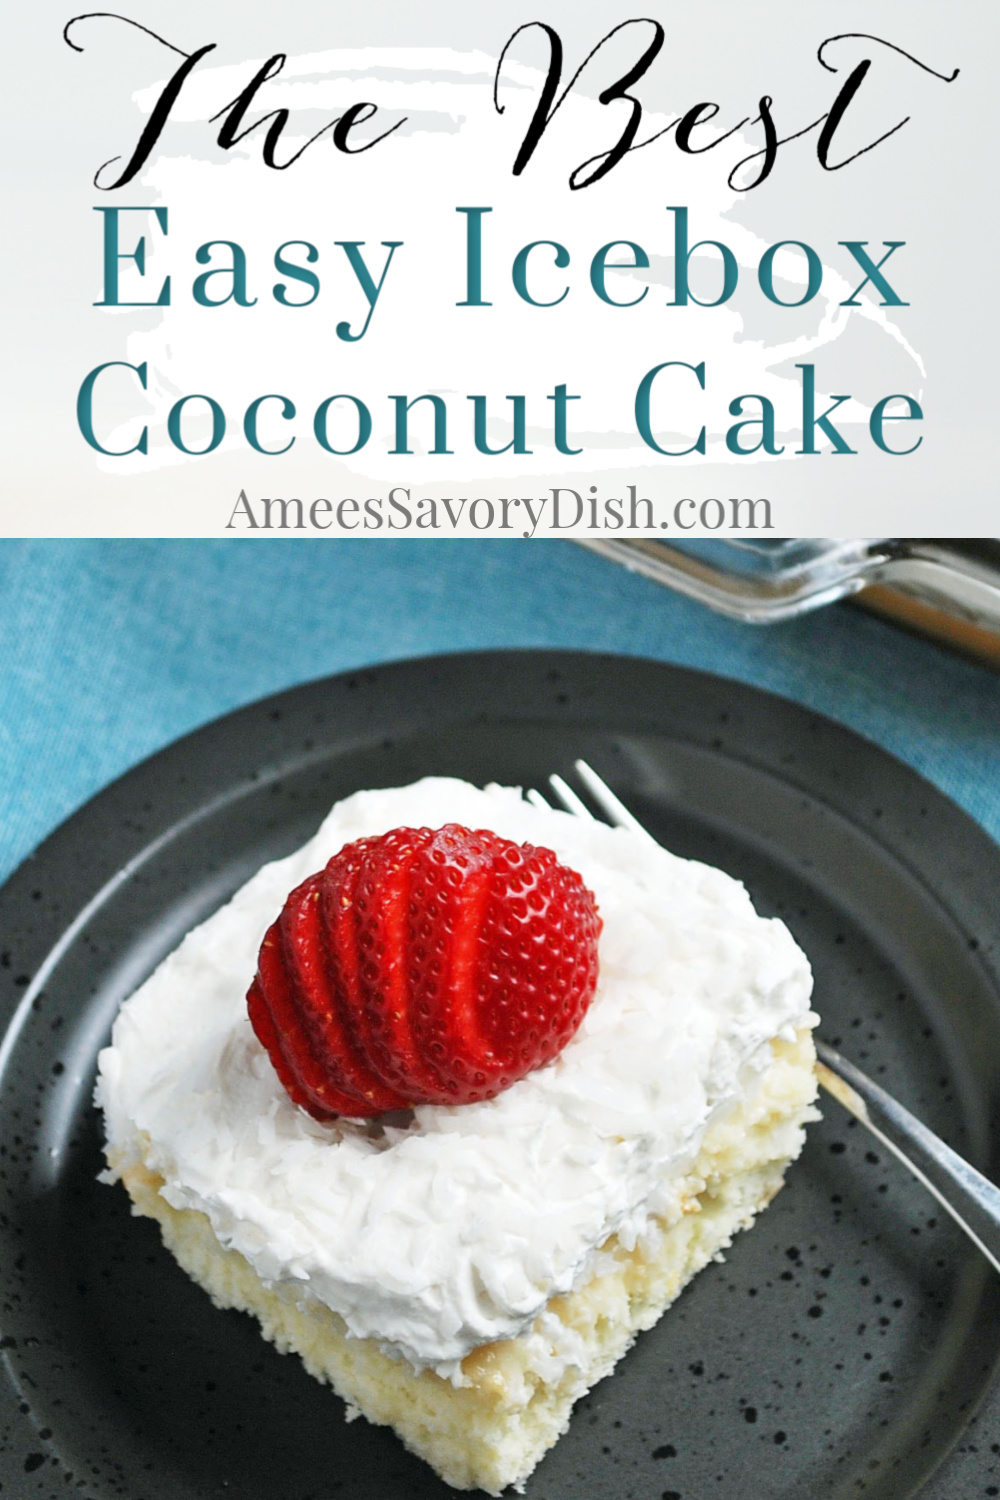 My mother has been making this icebox coconut cake recipe for years.  It brings back special memories from my childhood.  It's a quick and easy cake recipe made with boxed white cake mix, frozen coconut, whole milk, sugar, eggs, vanilla, and frozen whipped topping. #coconutcake #iceboxcake #easycoconutcake via @Ameecooks